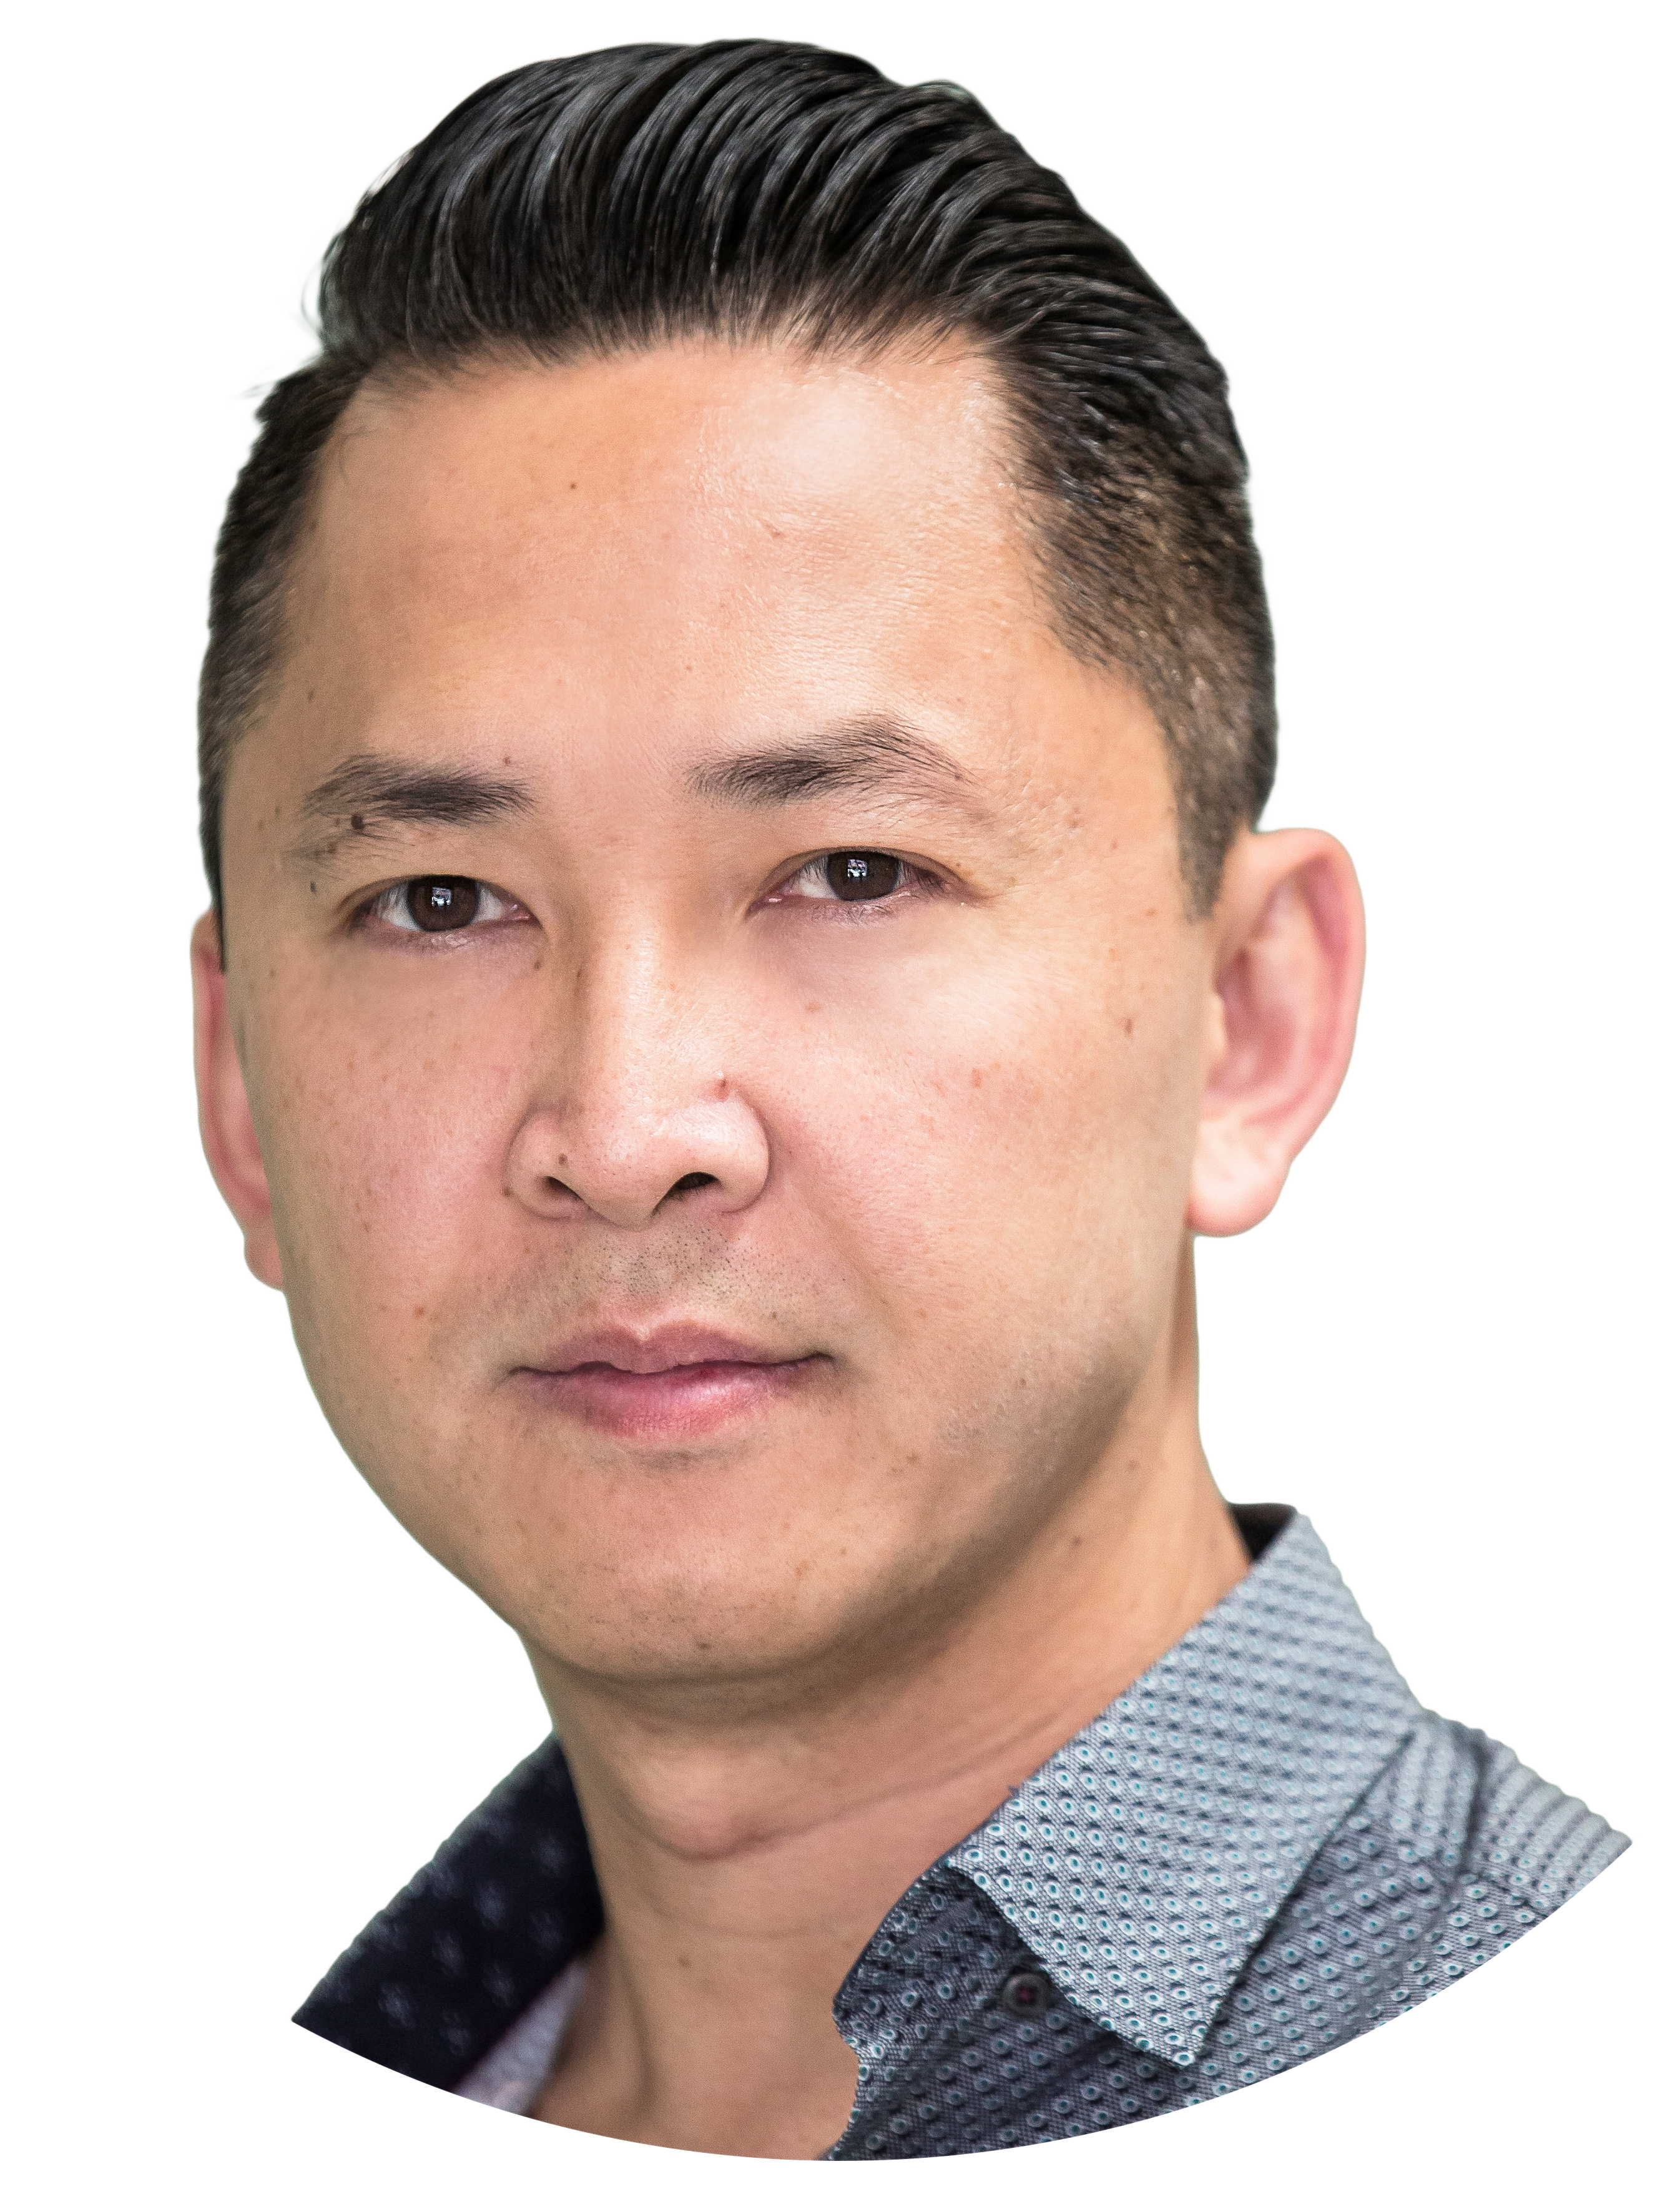 Viet Thanh Nguyen's new novel sends the protagonist of 'The Sympathizer' to the City of Light.